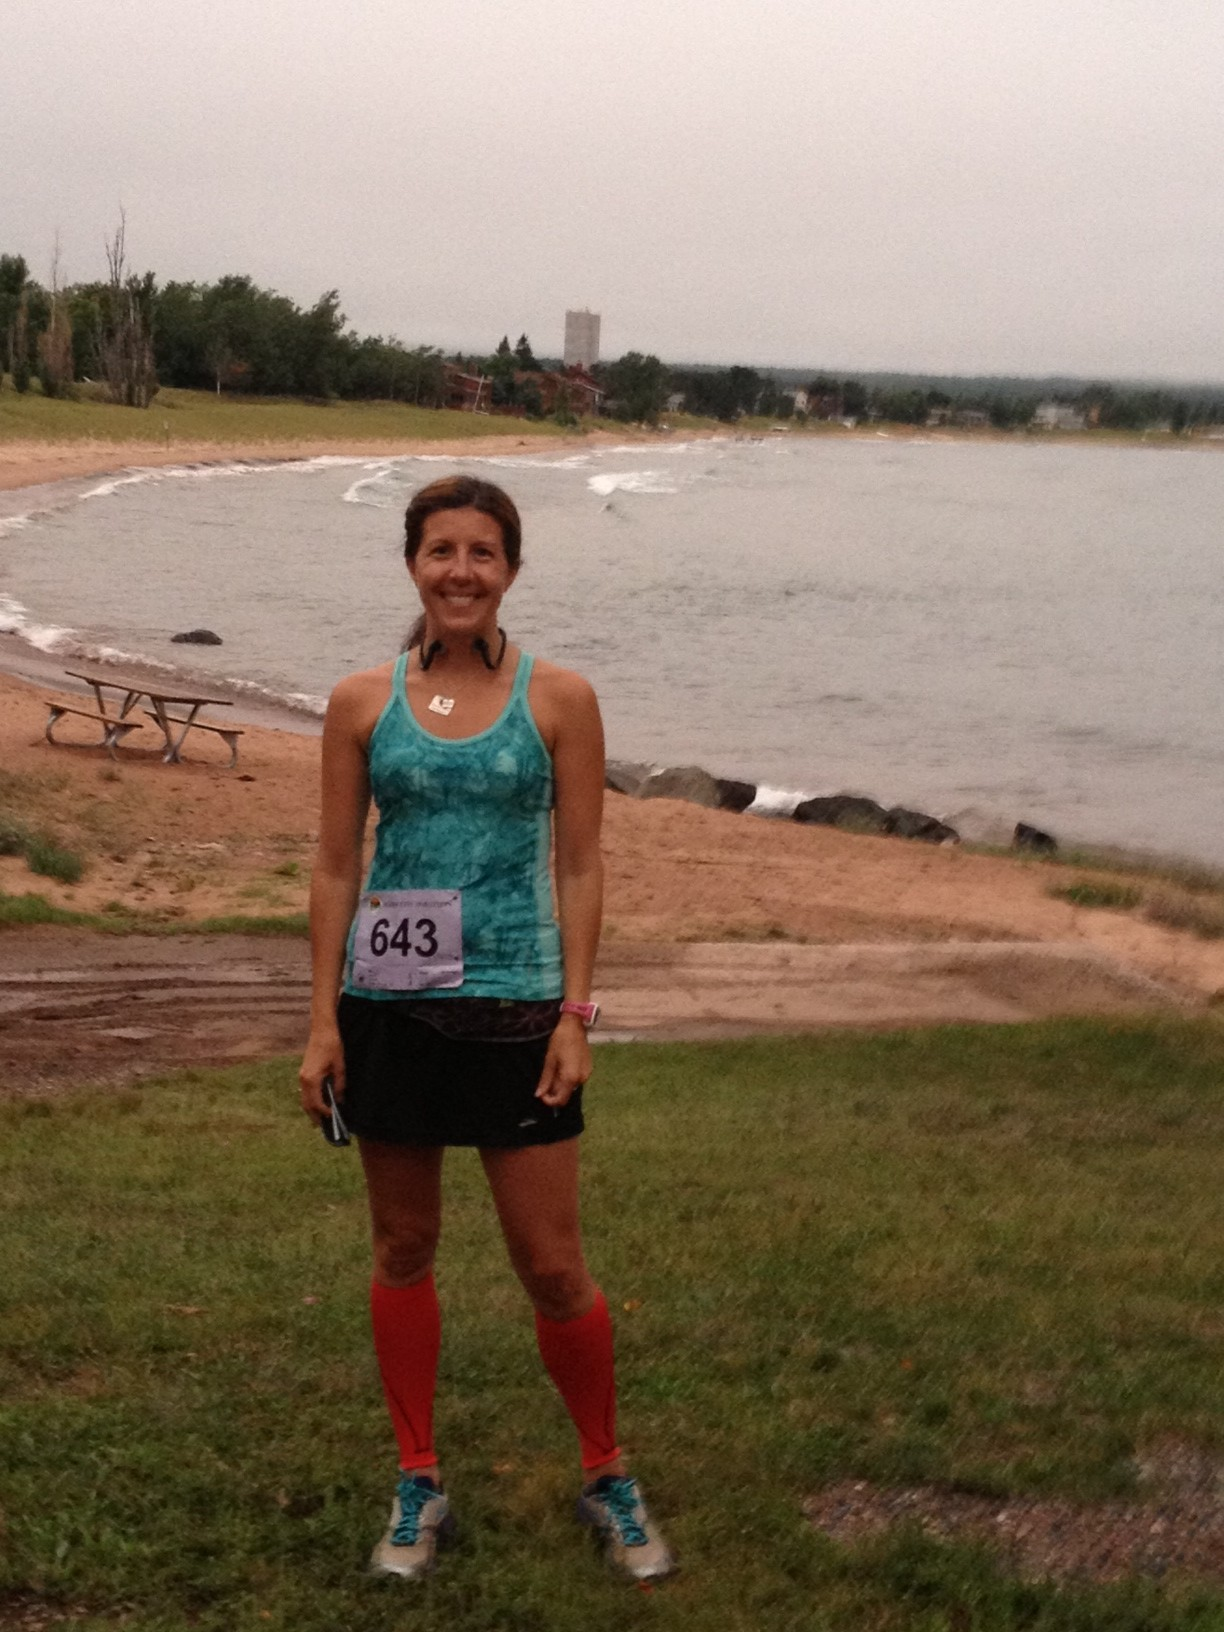 At the race start, along Lake Superior.